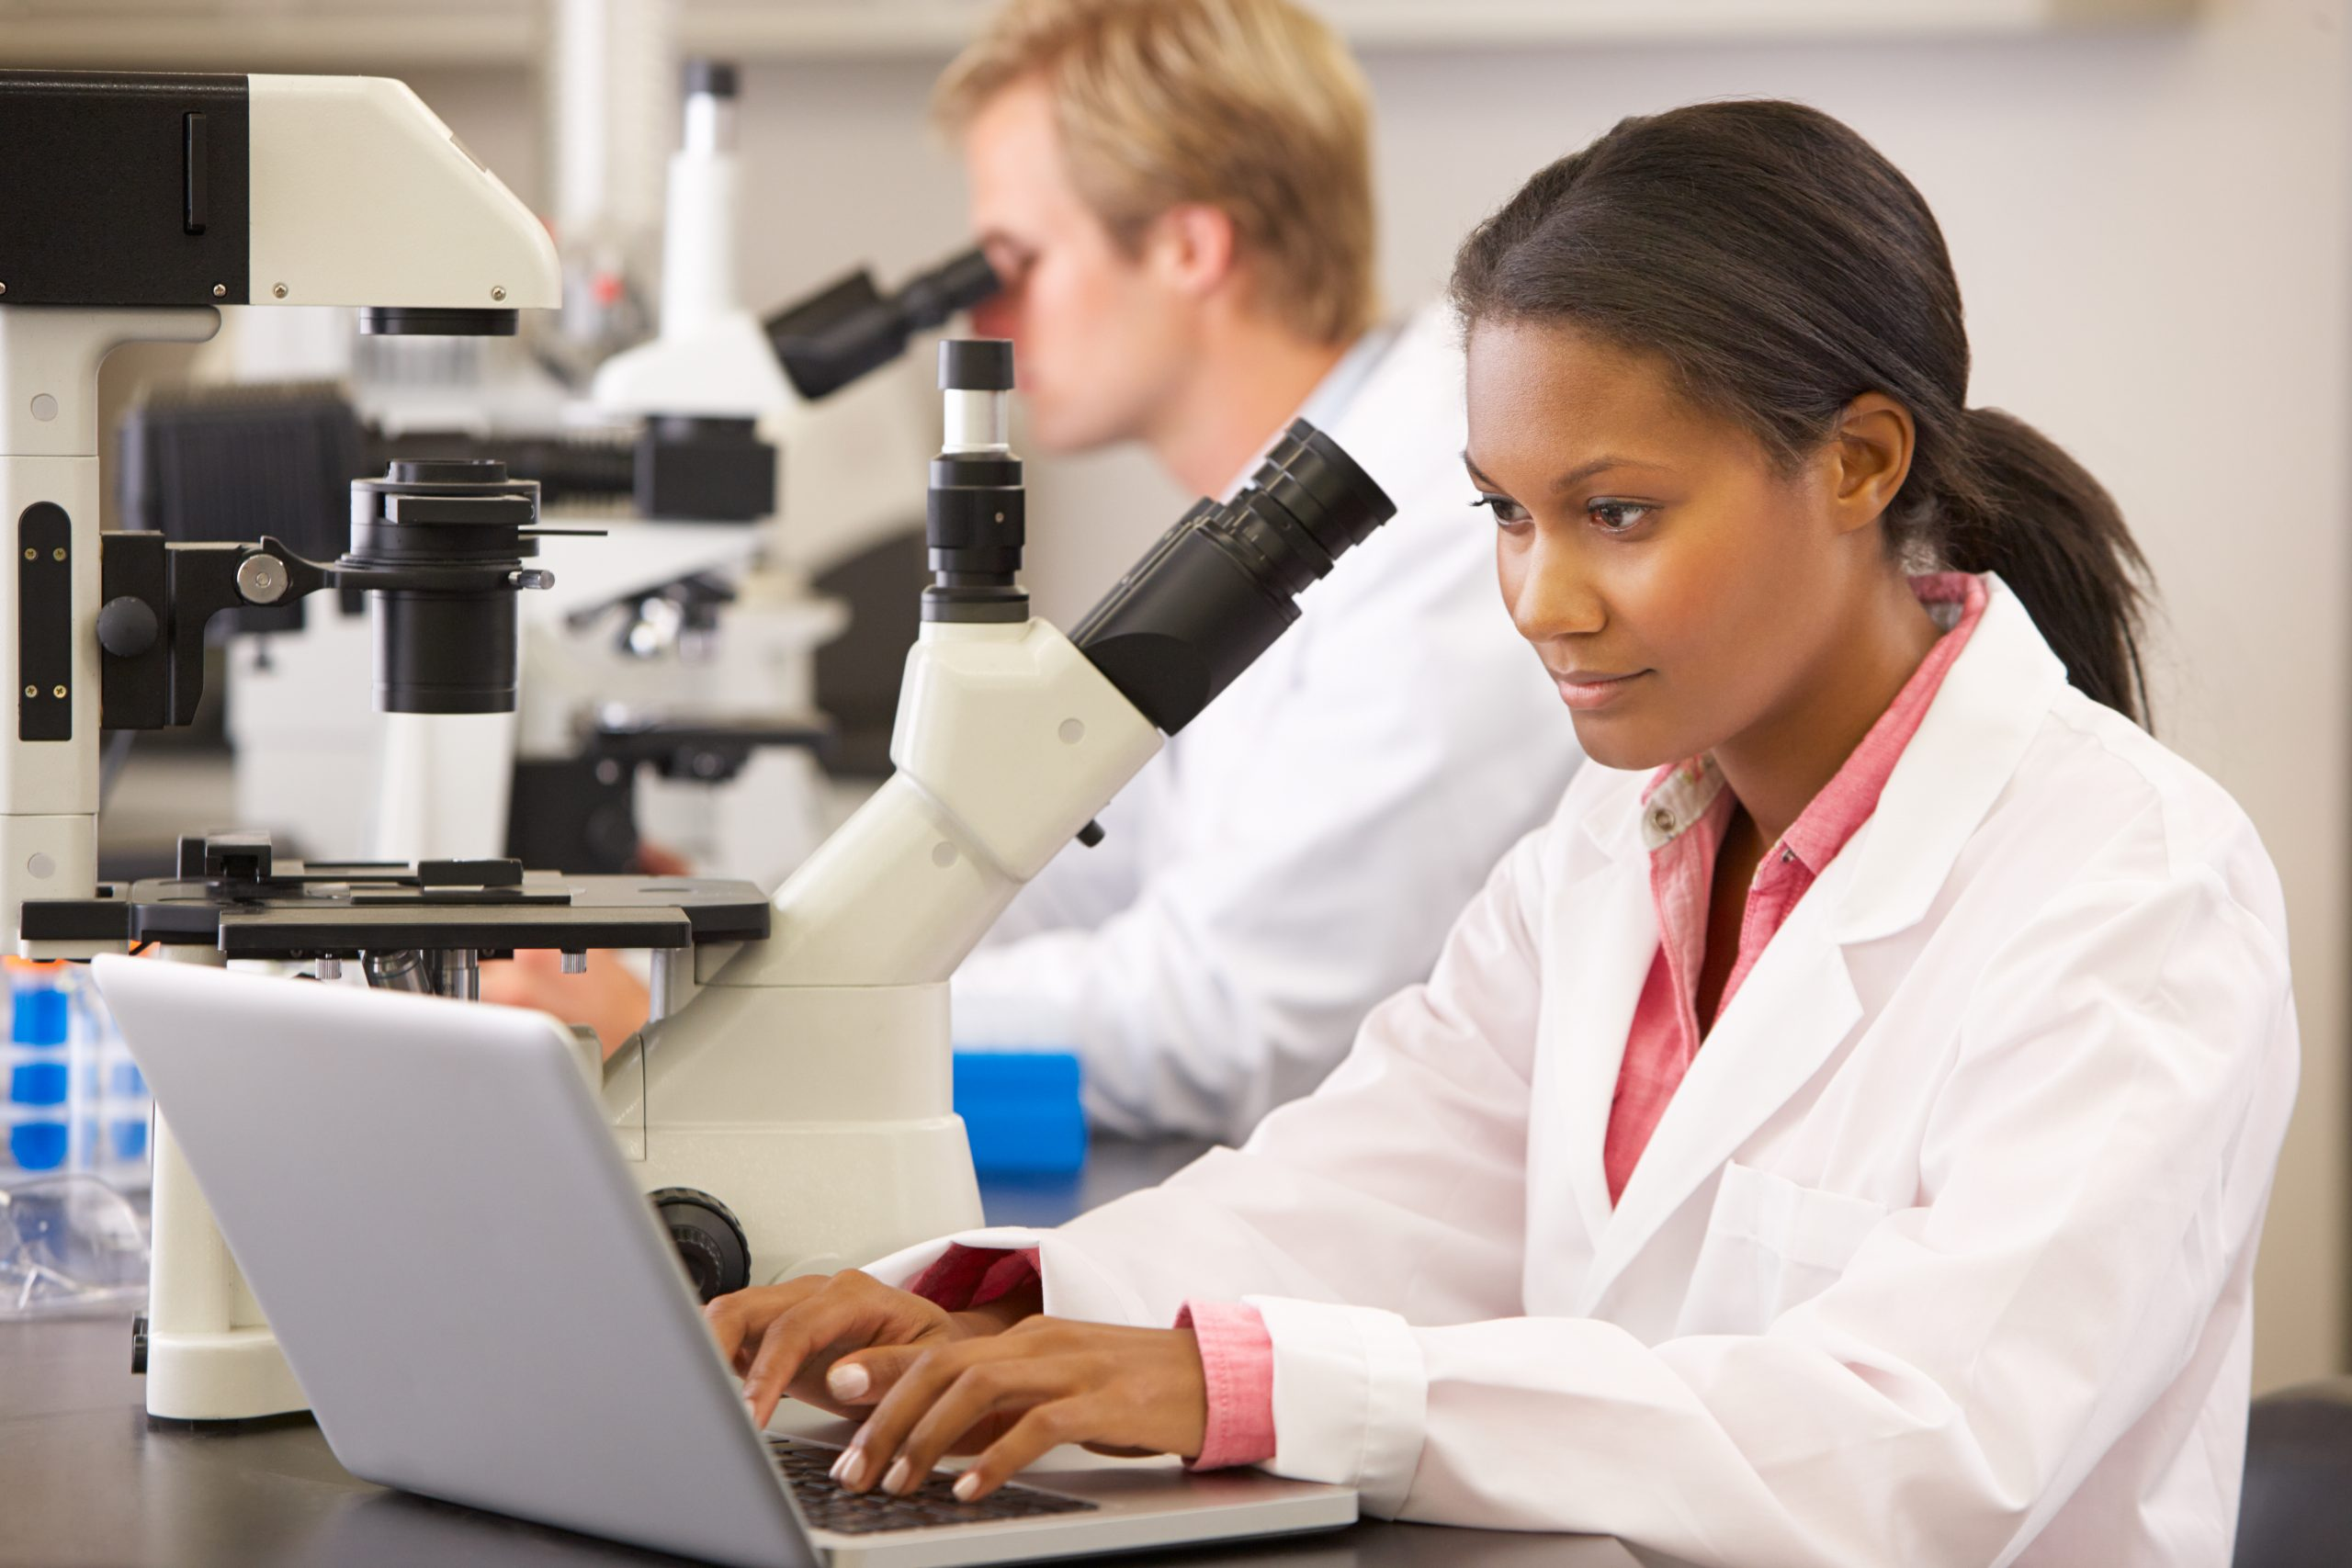 Woman in white lab coat looks into microscope